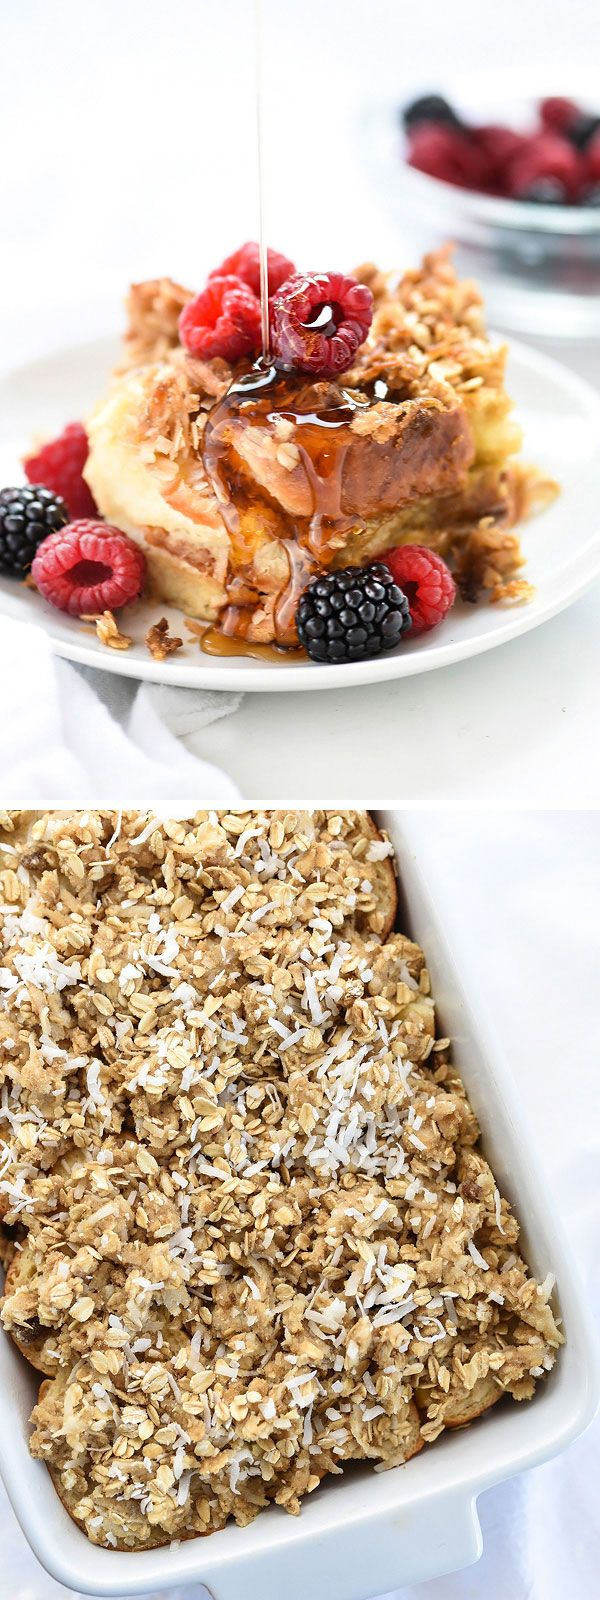 Coconut Baked French Toast With Oatmeal Crumble is made with sweet challah bread and Coconut Almond Breeze for loads of coconut flavor | foodiecrush.com